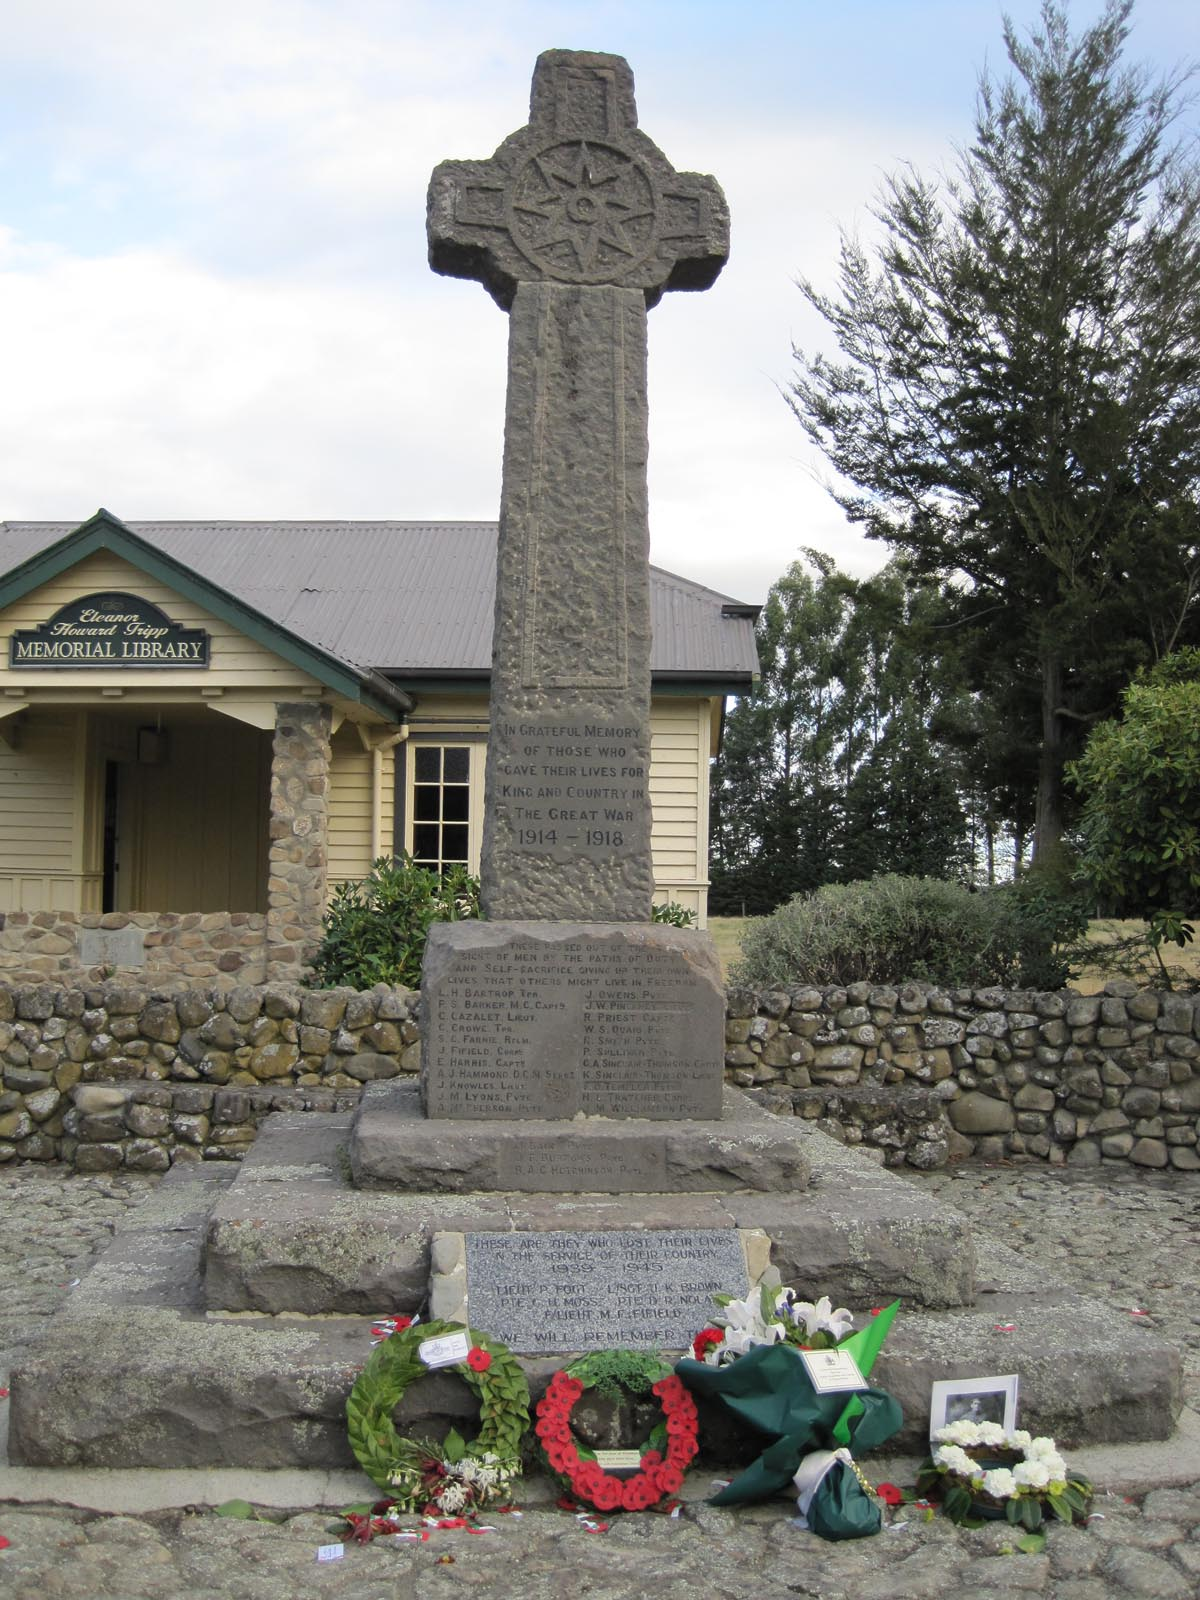 Woodbury War Memorial, pictured in 2010